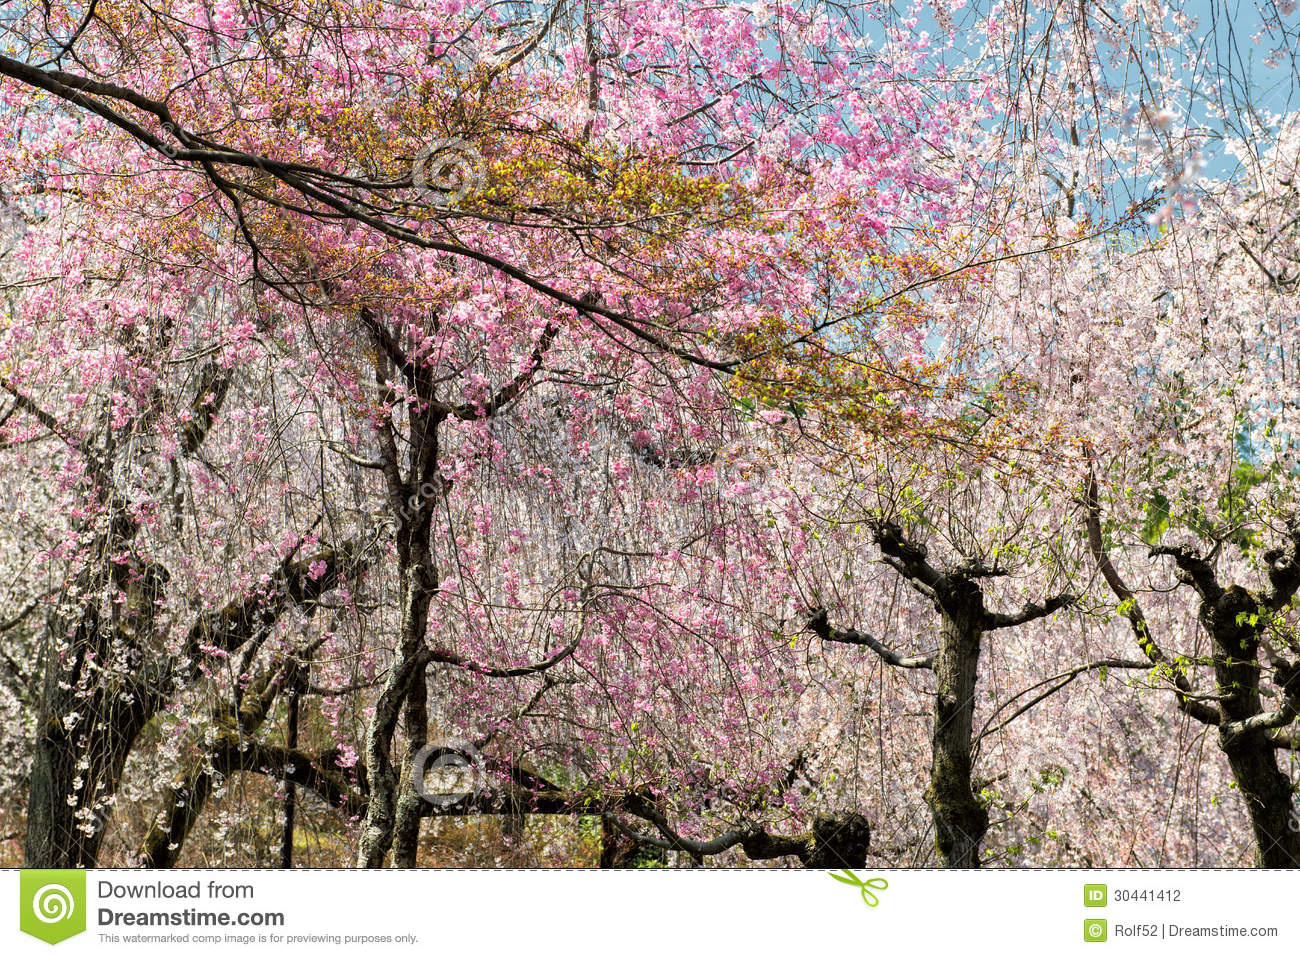 how to say springtime in japanese